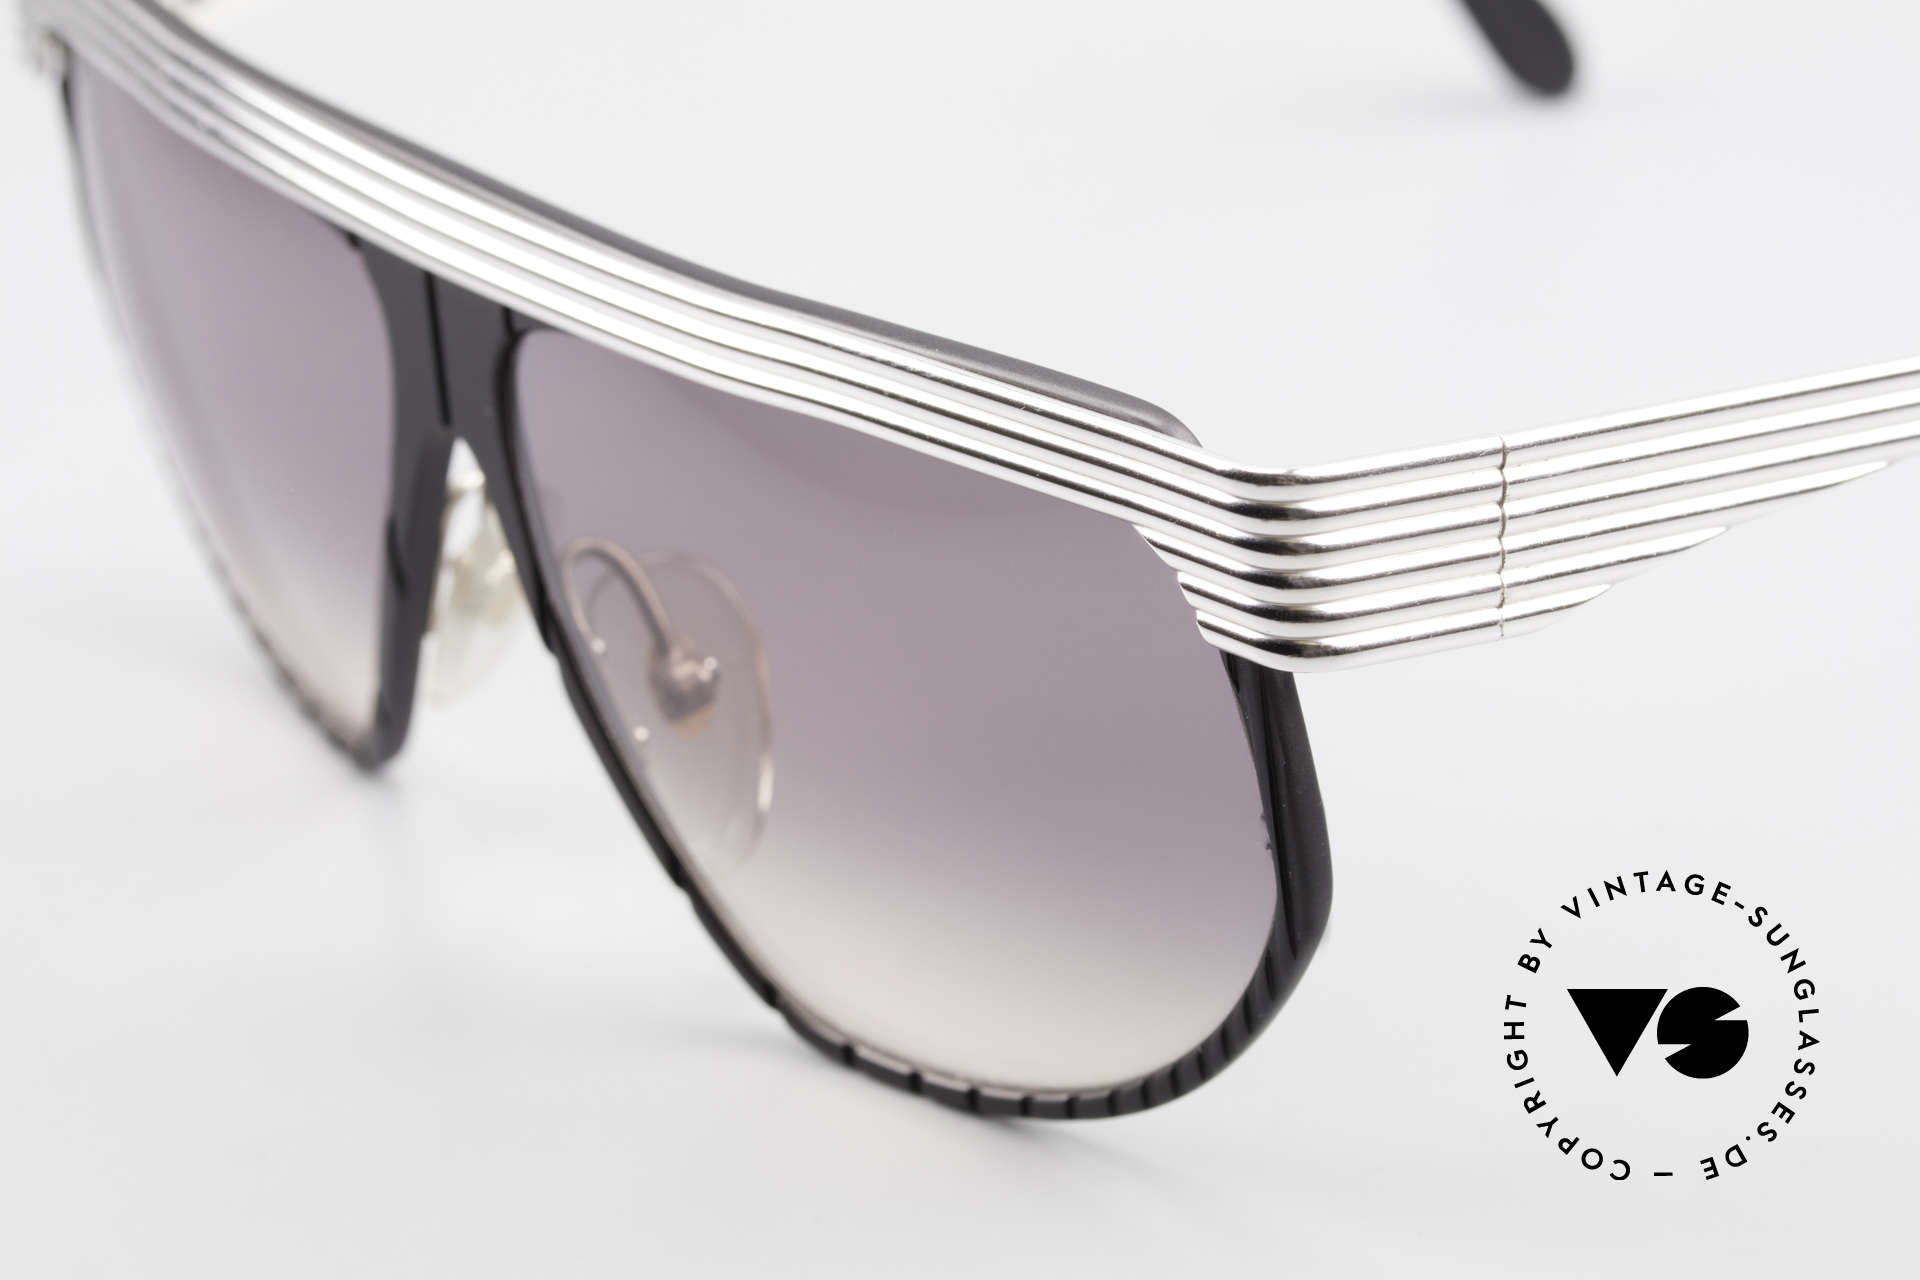 Alpina G86 No Retro Shades True 1980's, top notch quality (with silver-plated metal appliqué), Made for Men and Women